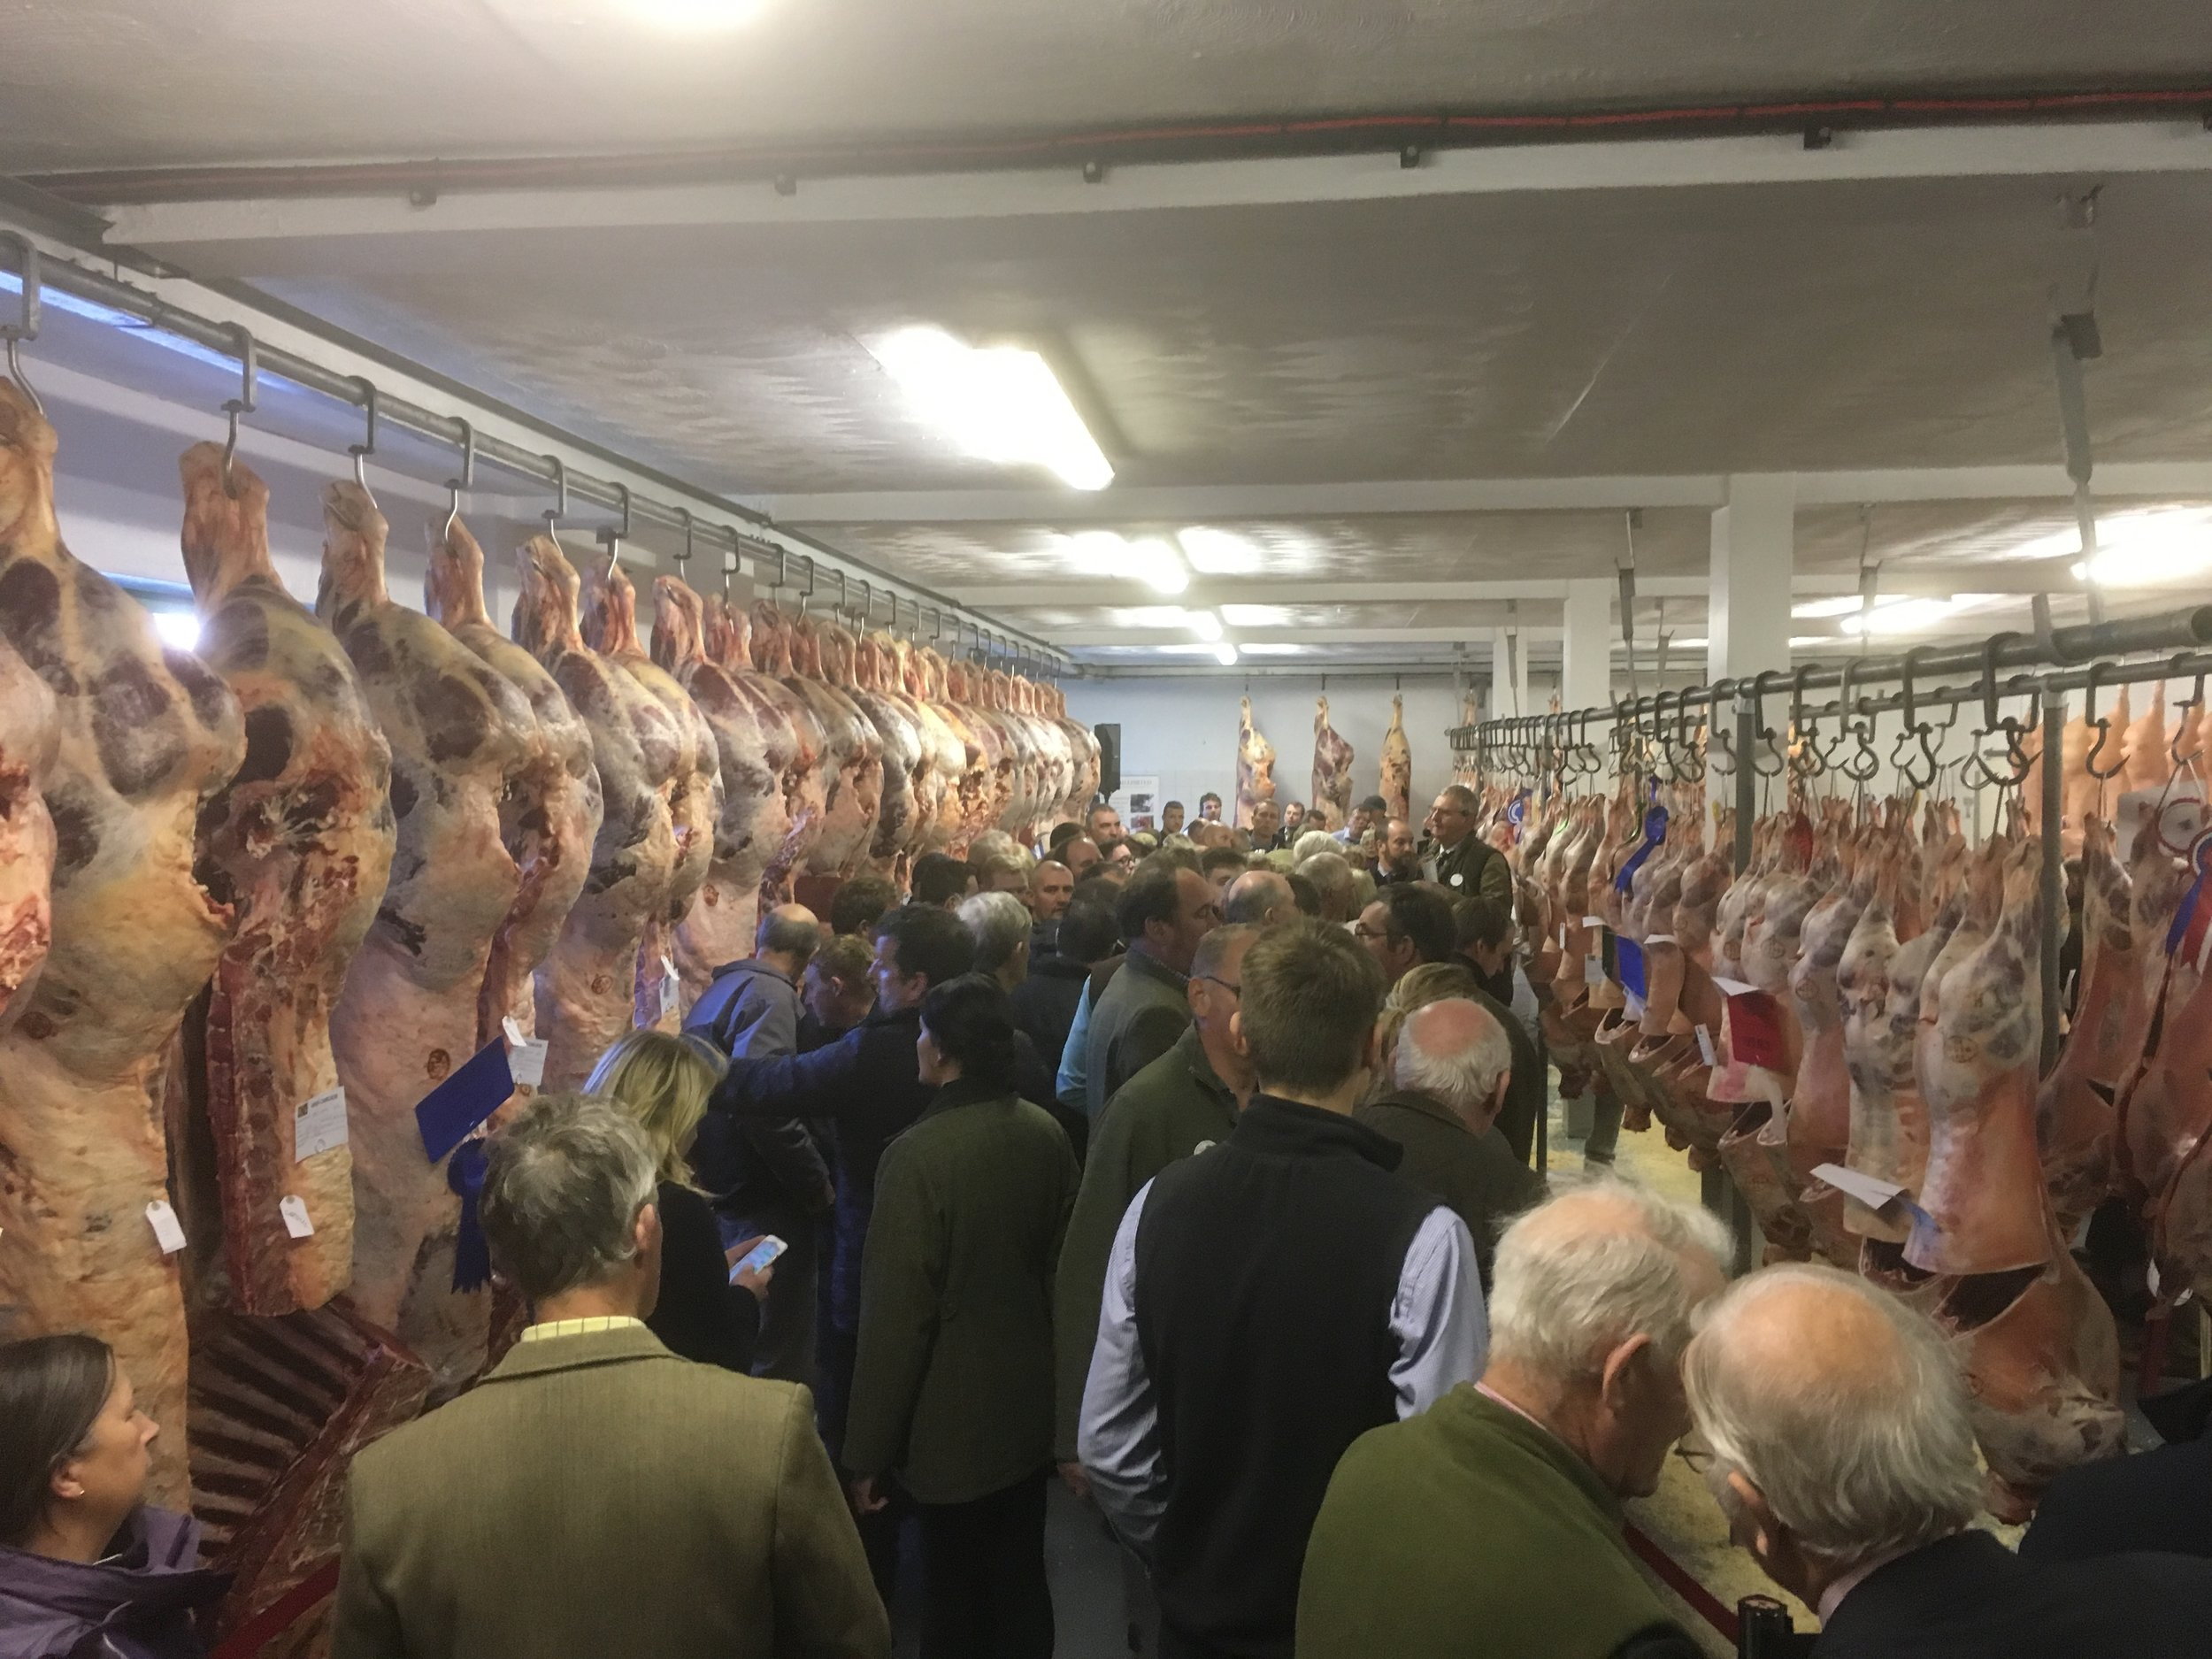 The packed Carcase Hall at Staffordshire Showground